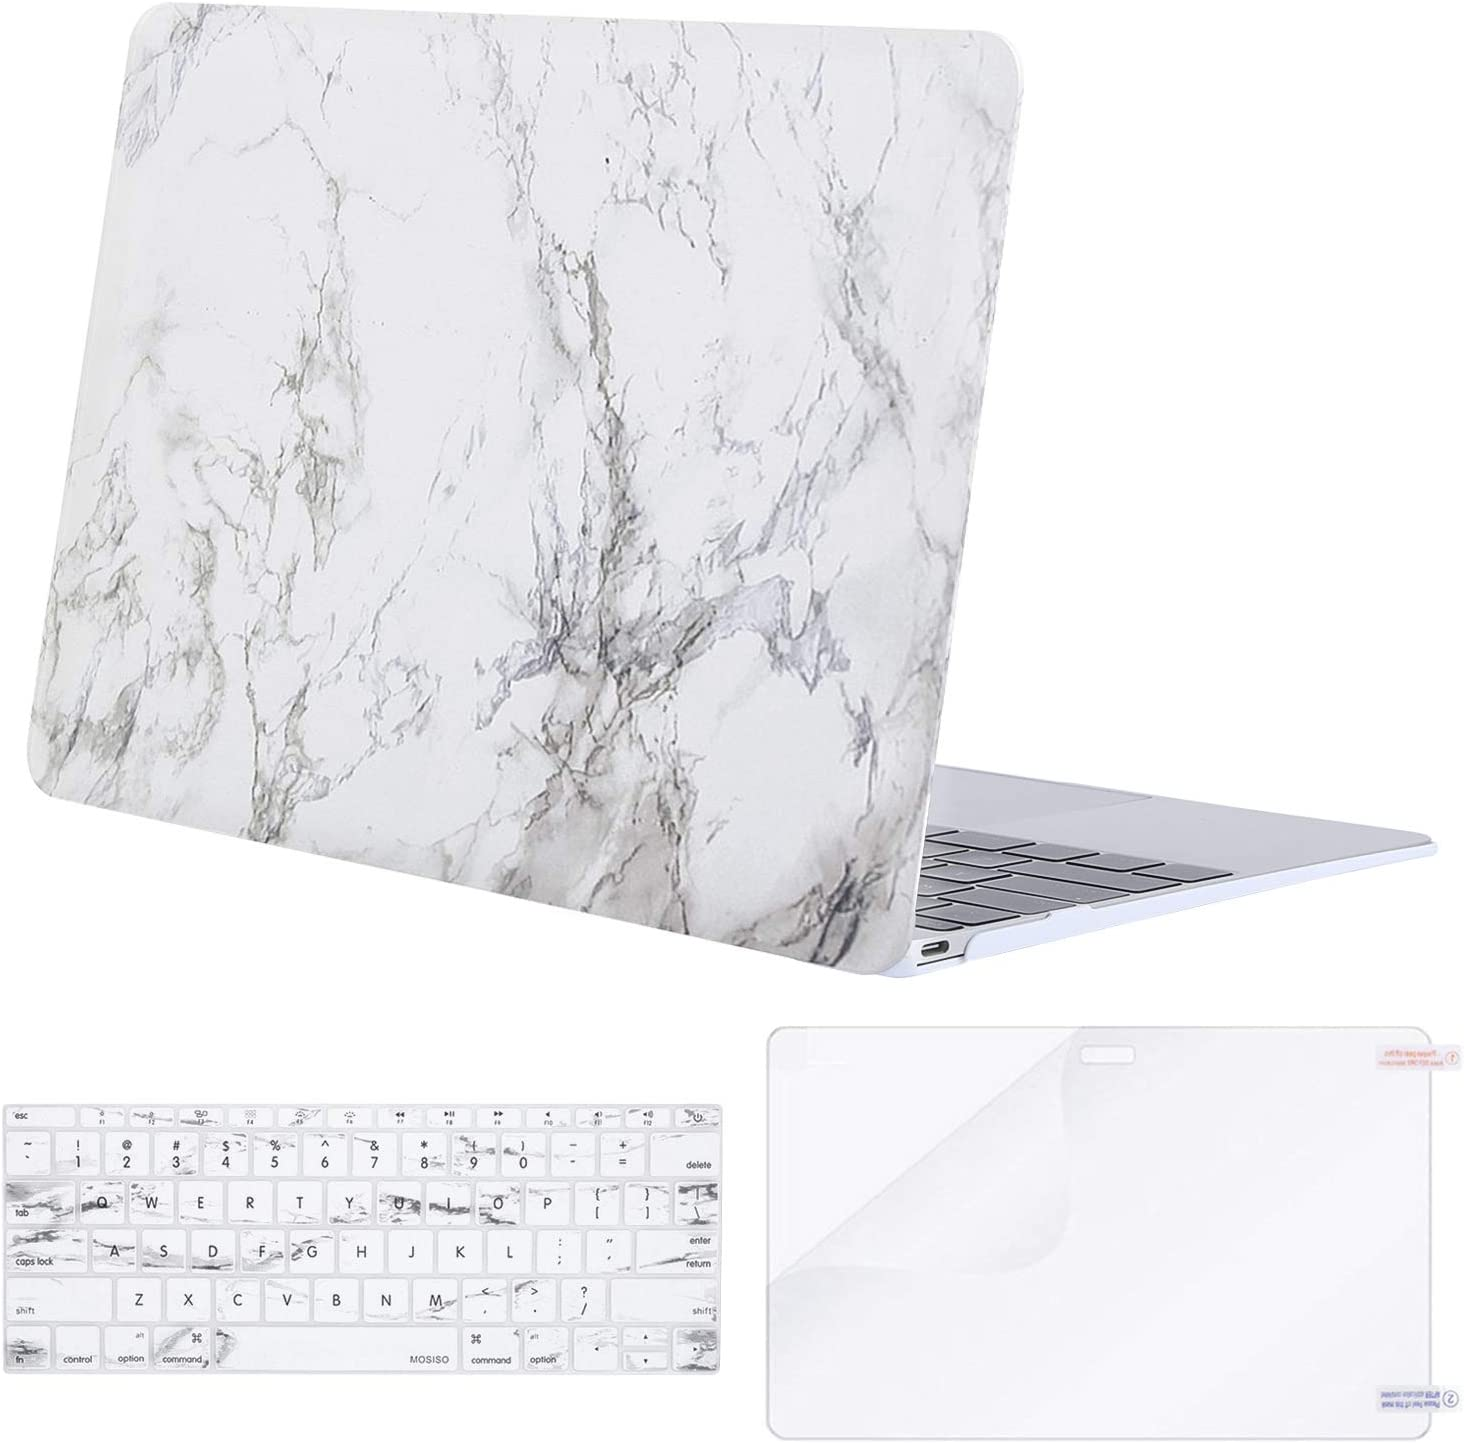 MOSISO Plastic Hard Shell Case /& Keyboard Cover Skin Only Compatible with MacBook 12 inch with Retina Display Black Model A1534, Release 2017 2016 2015